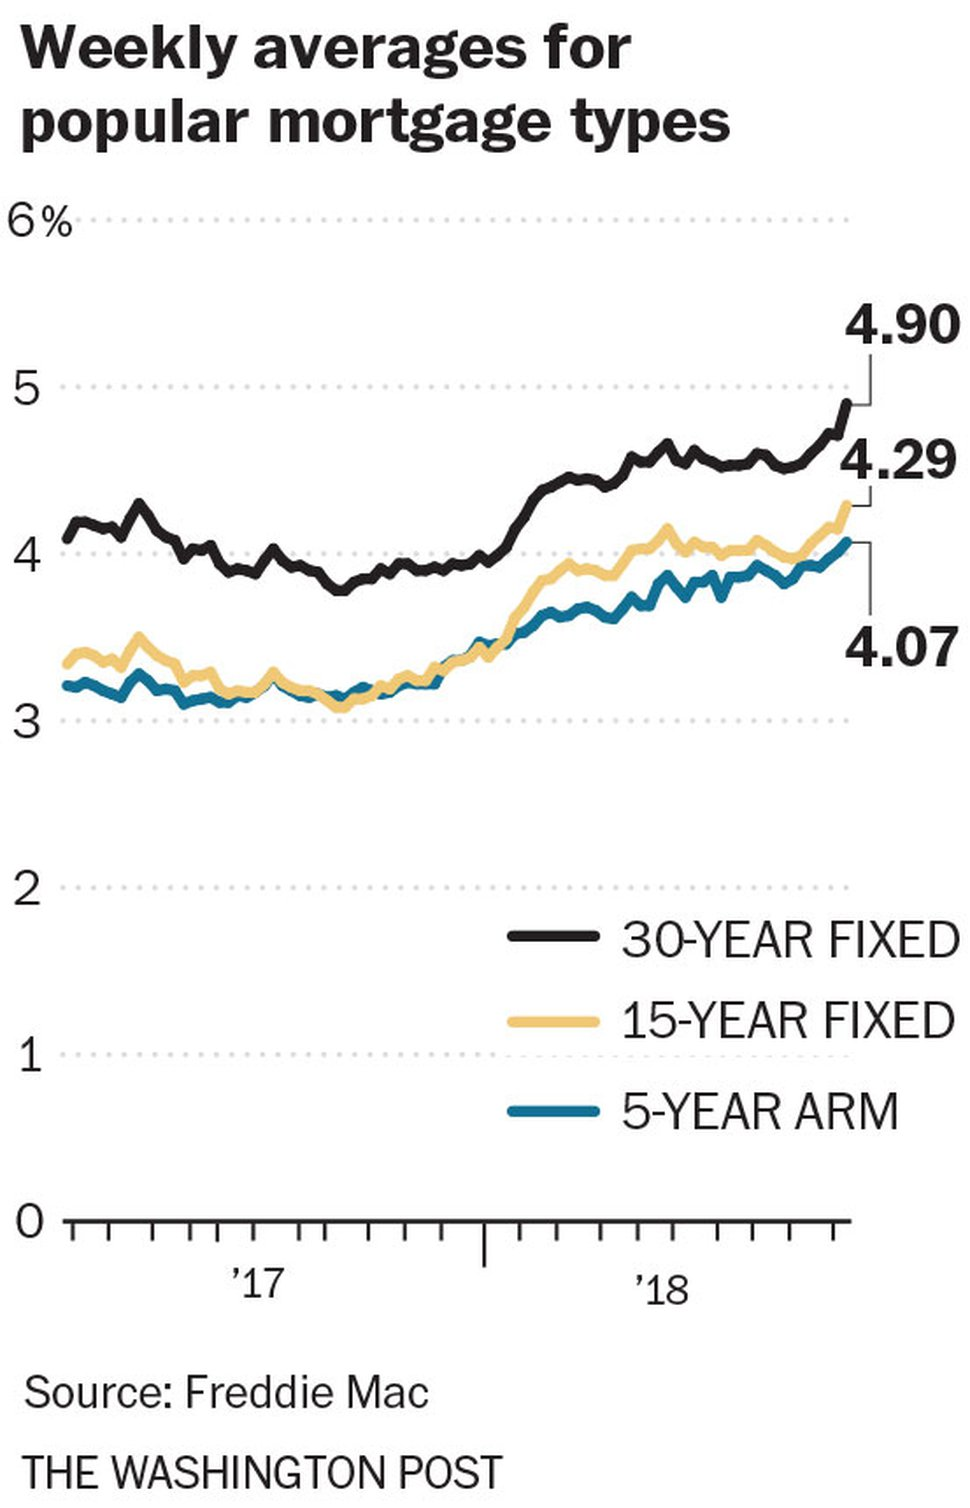 (The Washington Post) Weekly averages for 30-year and 15-year fixed-rate mortgage rates, in percent